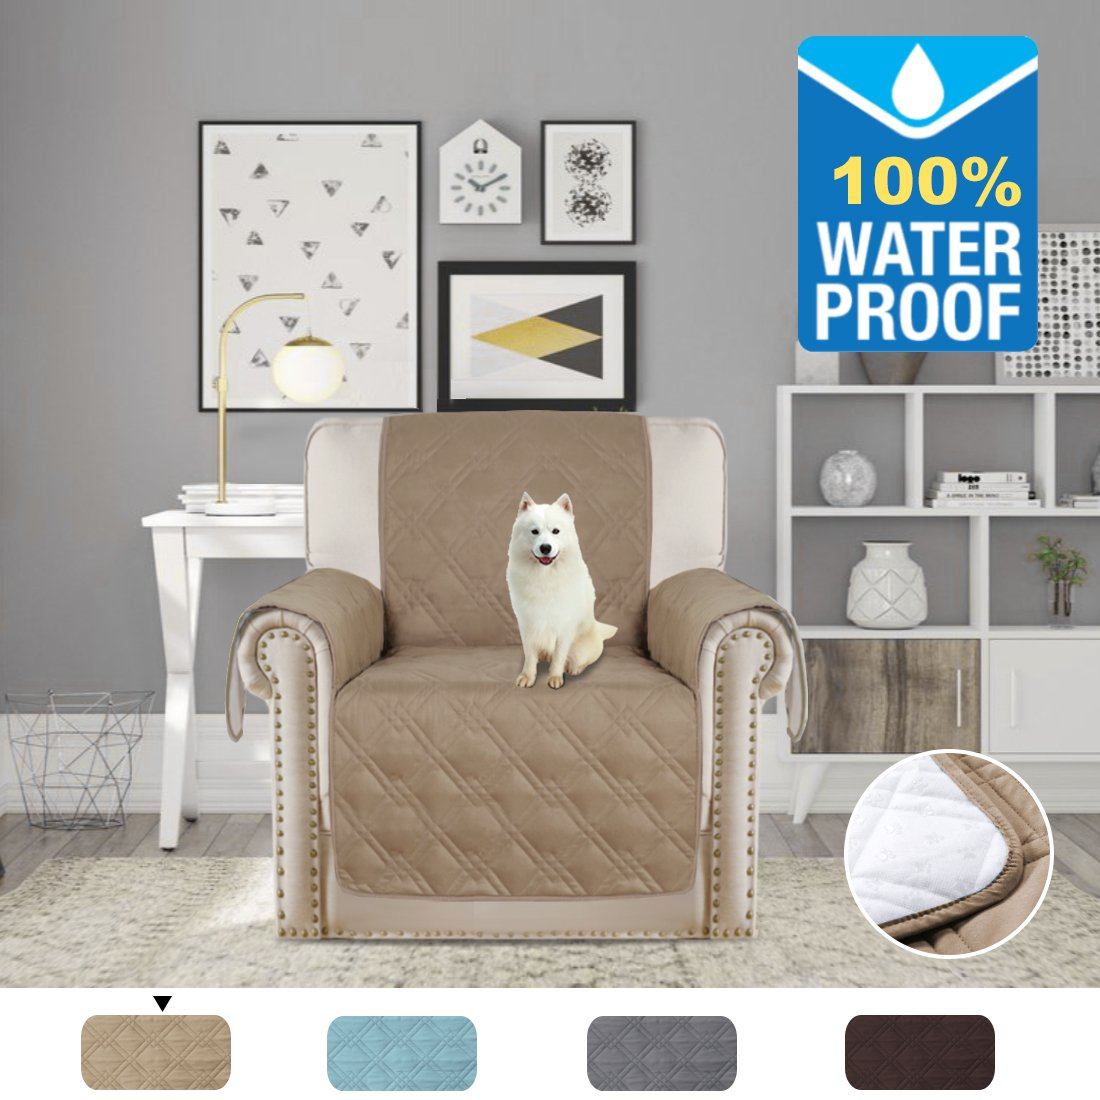 H.VERSAILTEX Non-slip Furniture Cover Perfect 100% Waterproof Sofa Protector for Pets Stay in Place (Recliner: Taupe) - 79 inch x 68 inch by H.VERSAILTEX